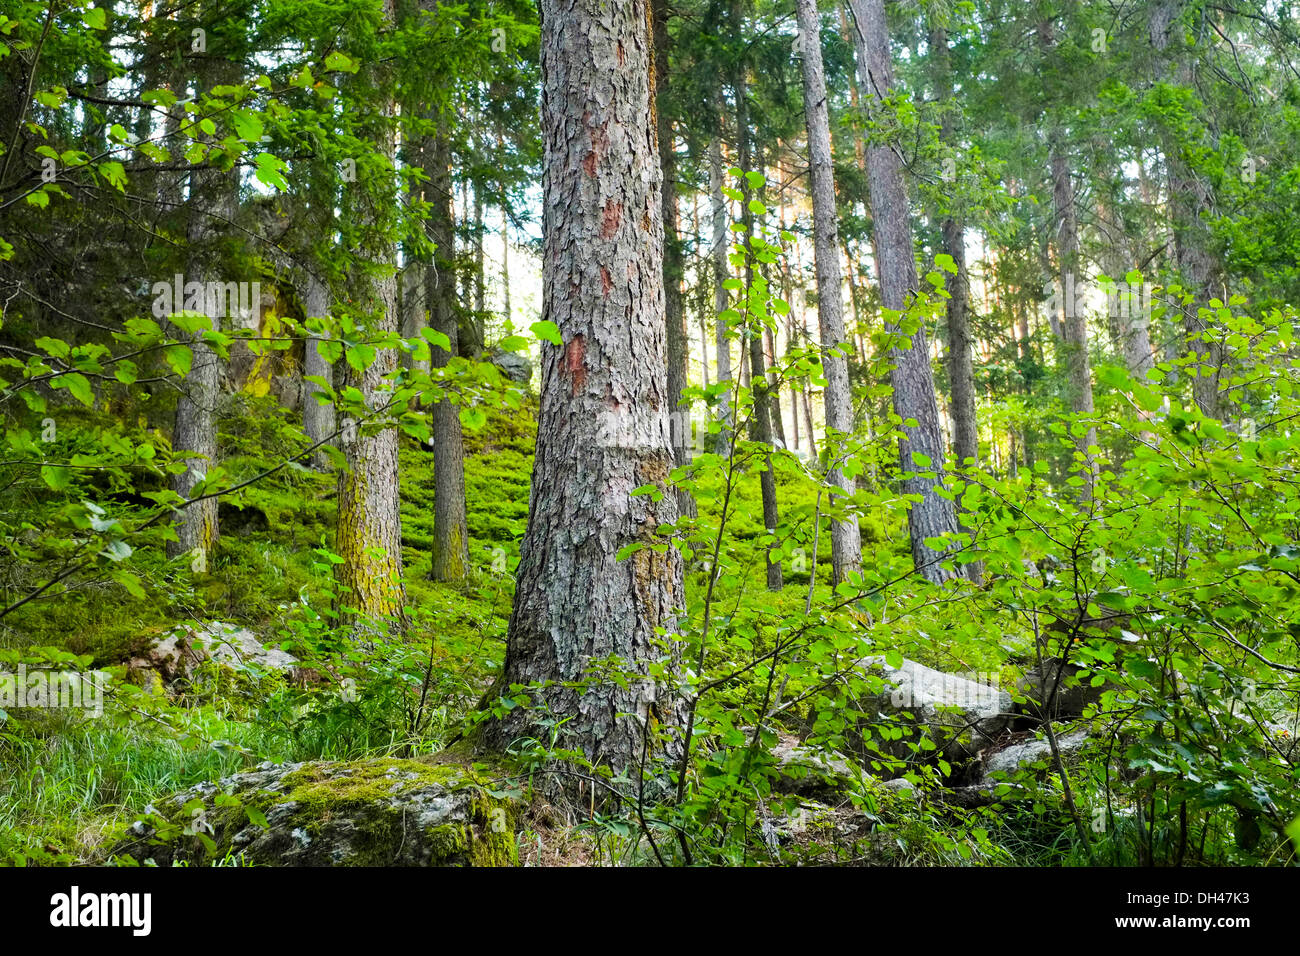 Forest in Aurina valley, South Tirol, Italy - Stock Image